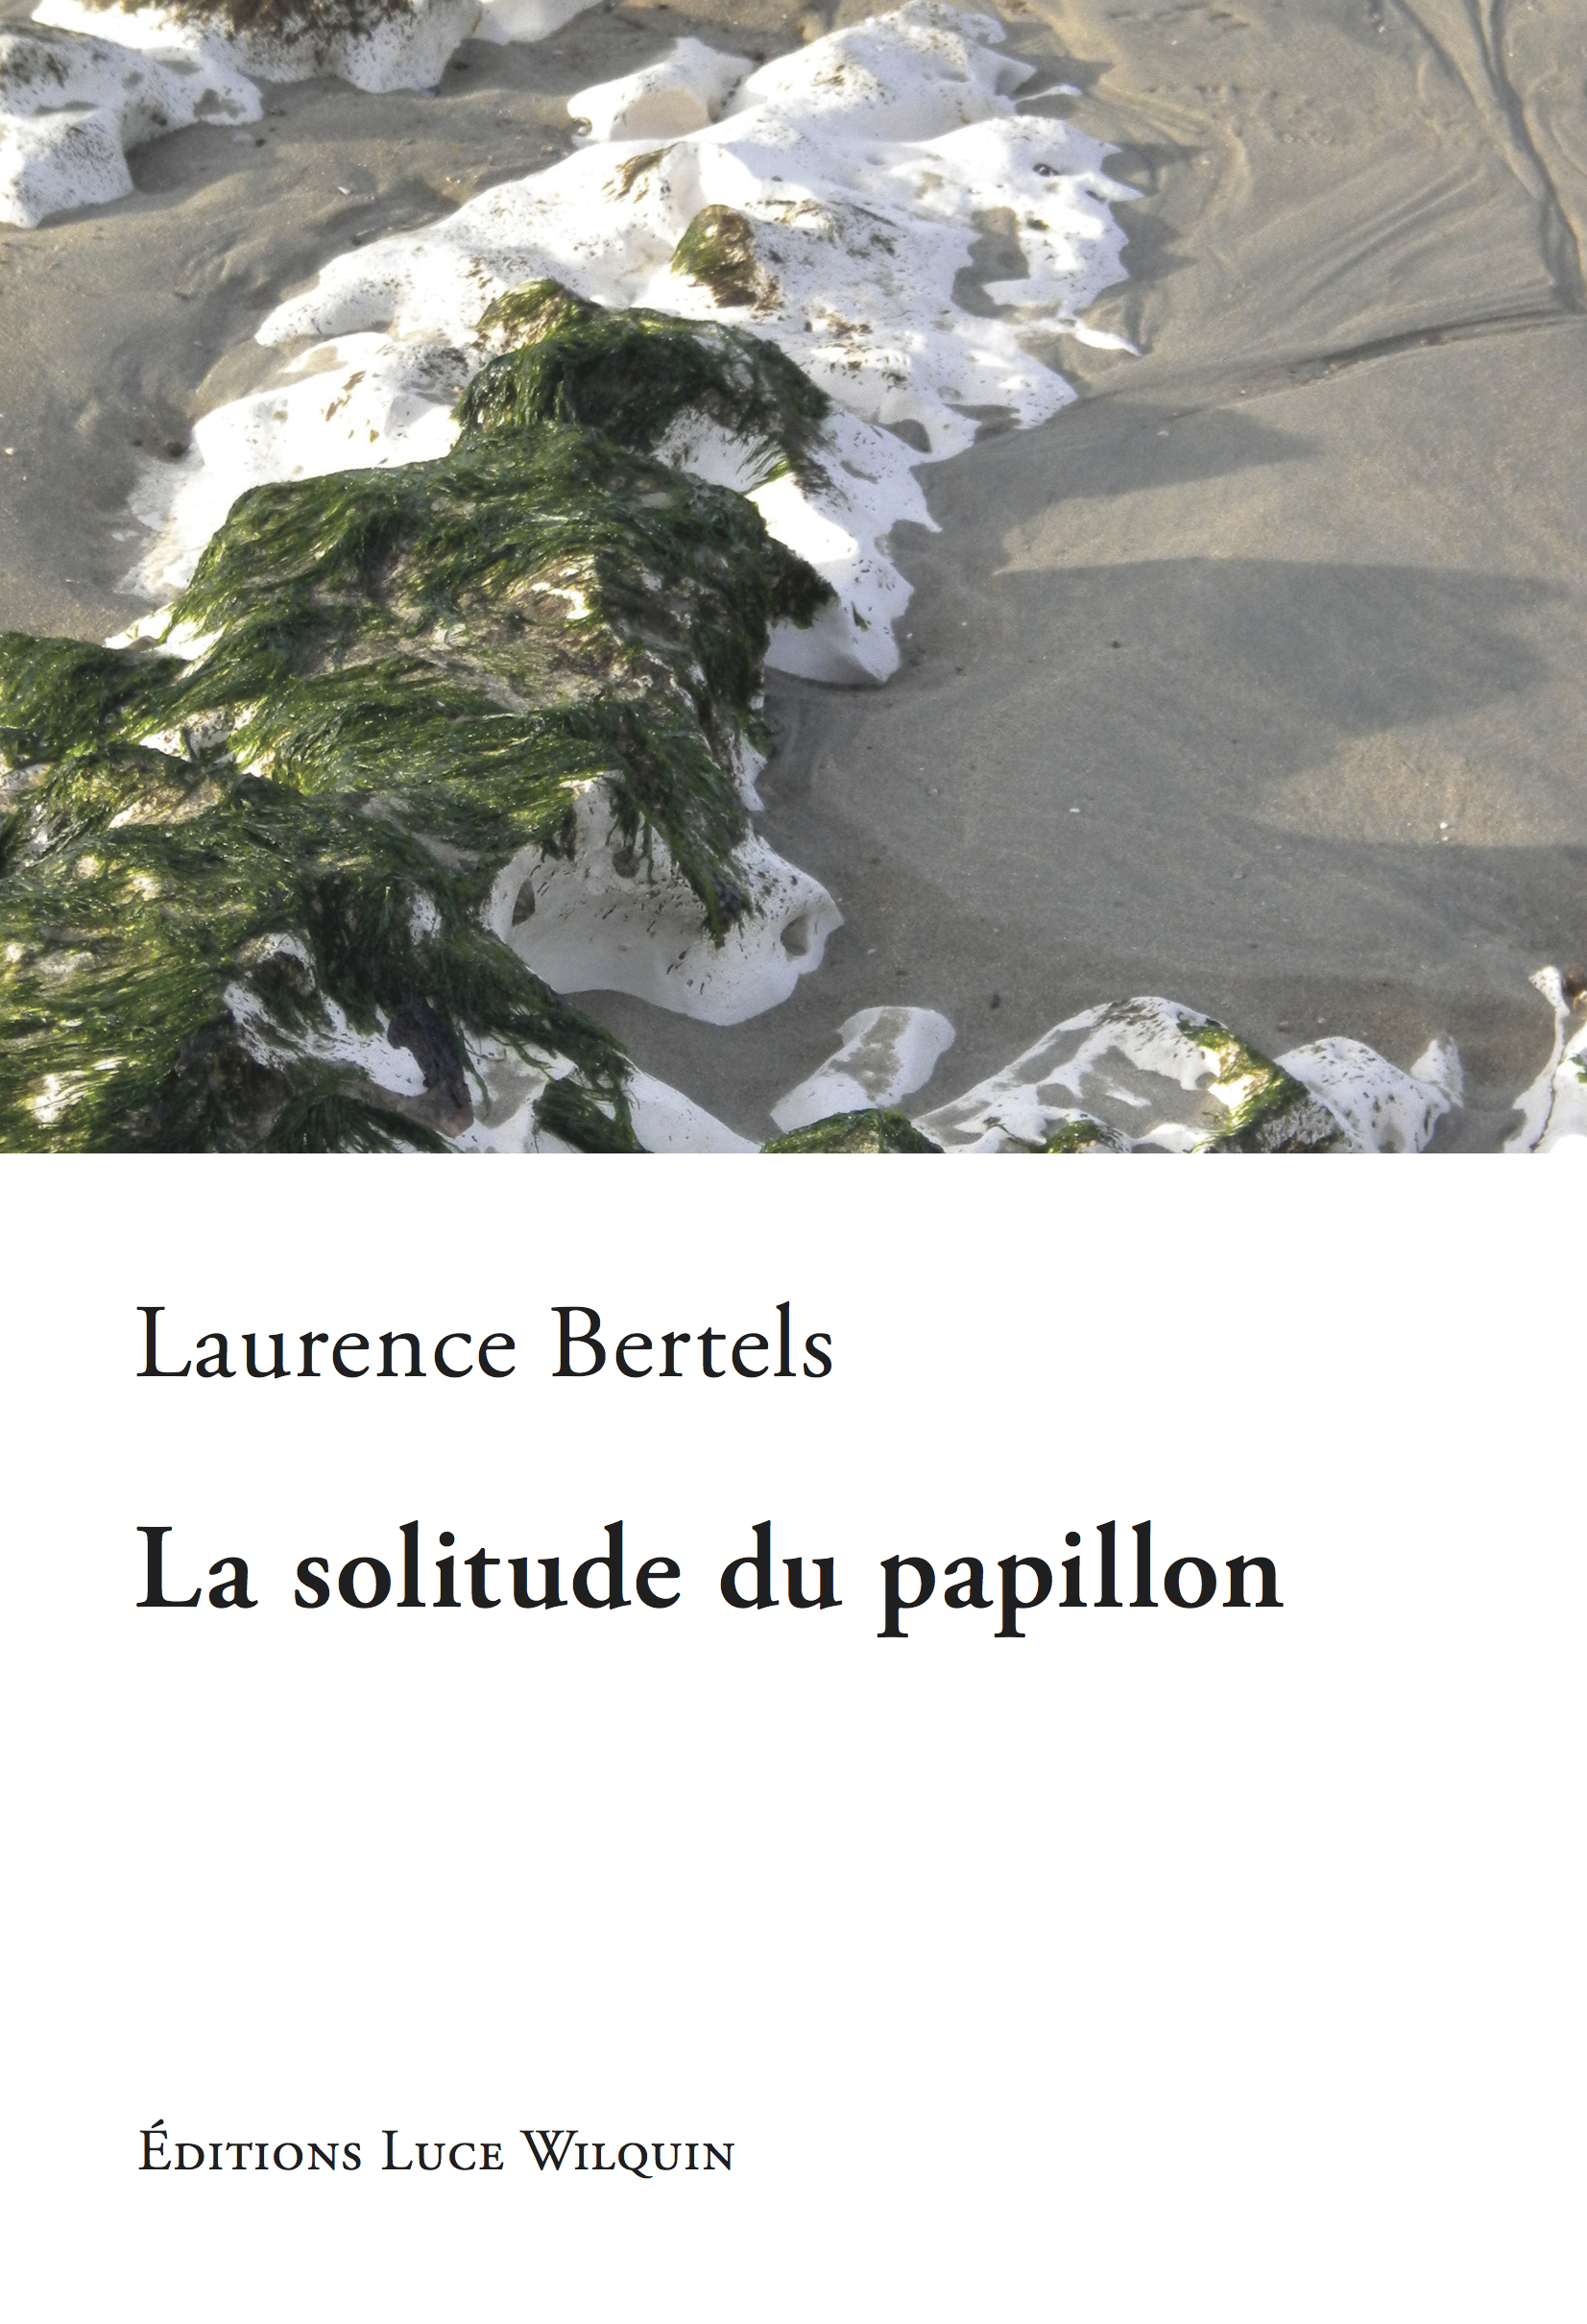 La solitude du papillon